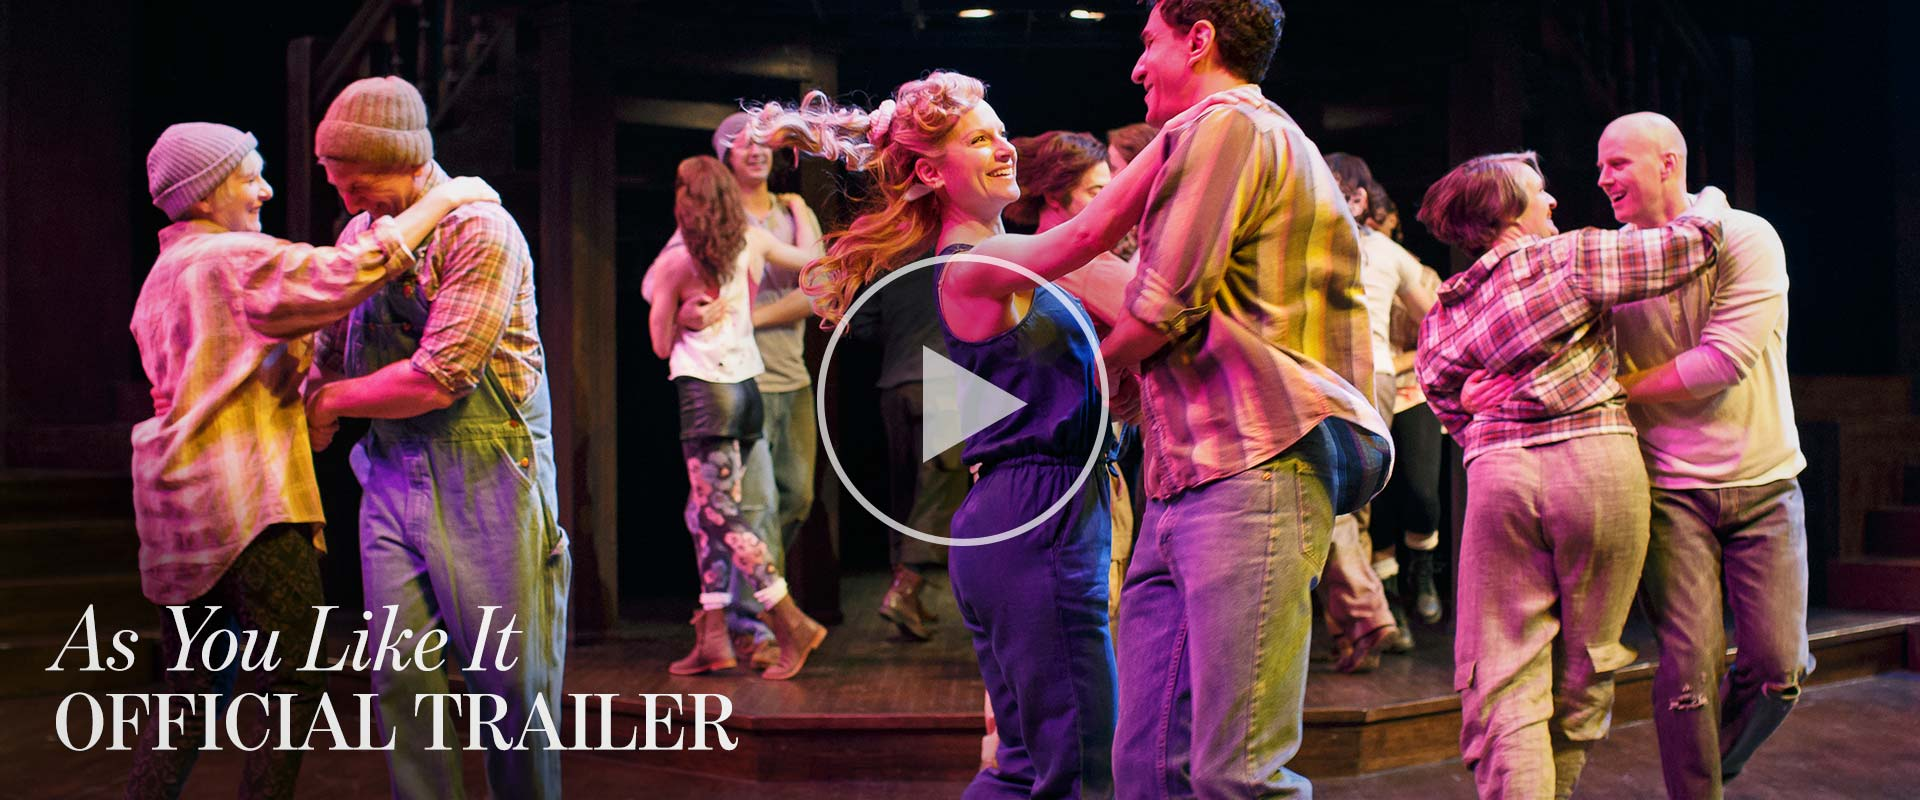 As You Like It Official Trailer